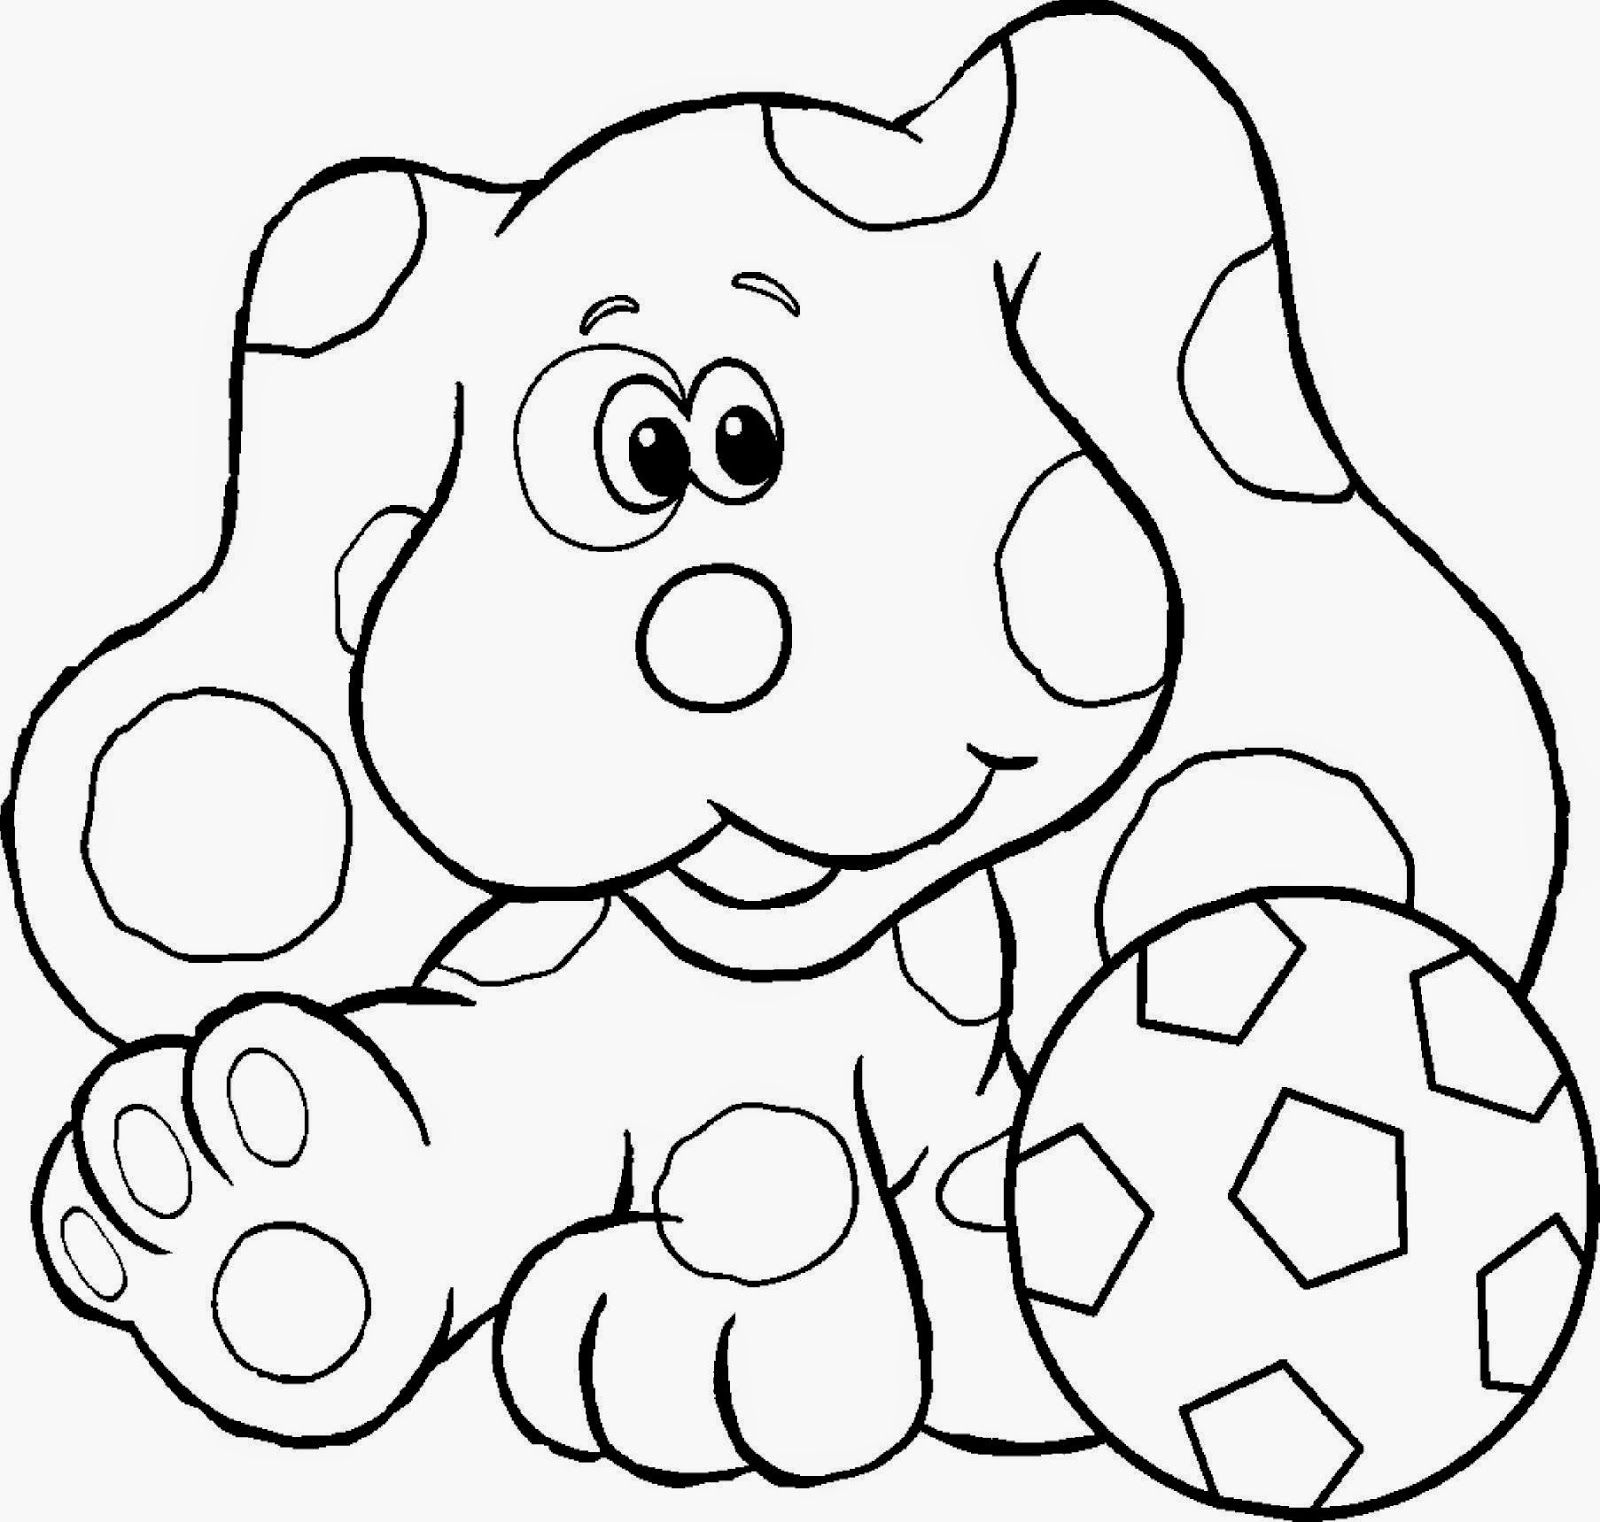 Adult Best Blue Clues Coloring Pages Images beauty blues clues colouring bookmark coloring pages free printable gallery images